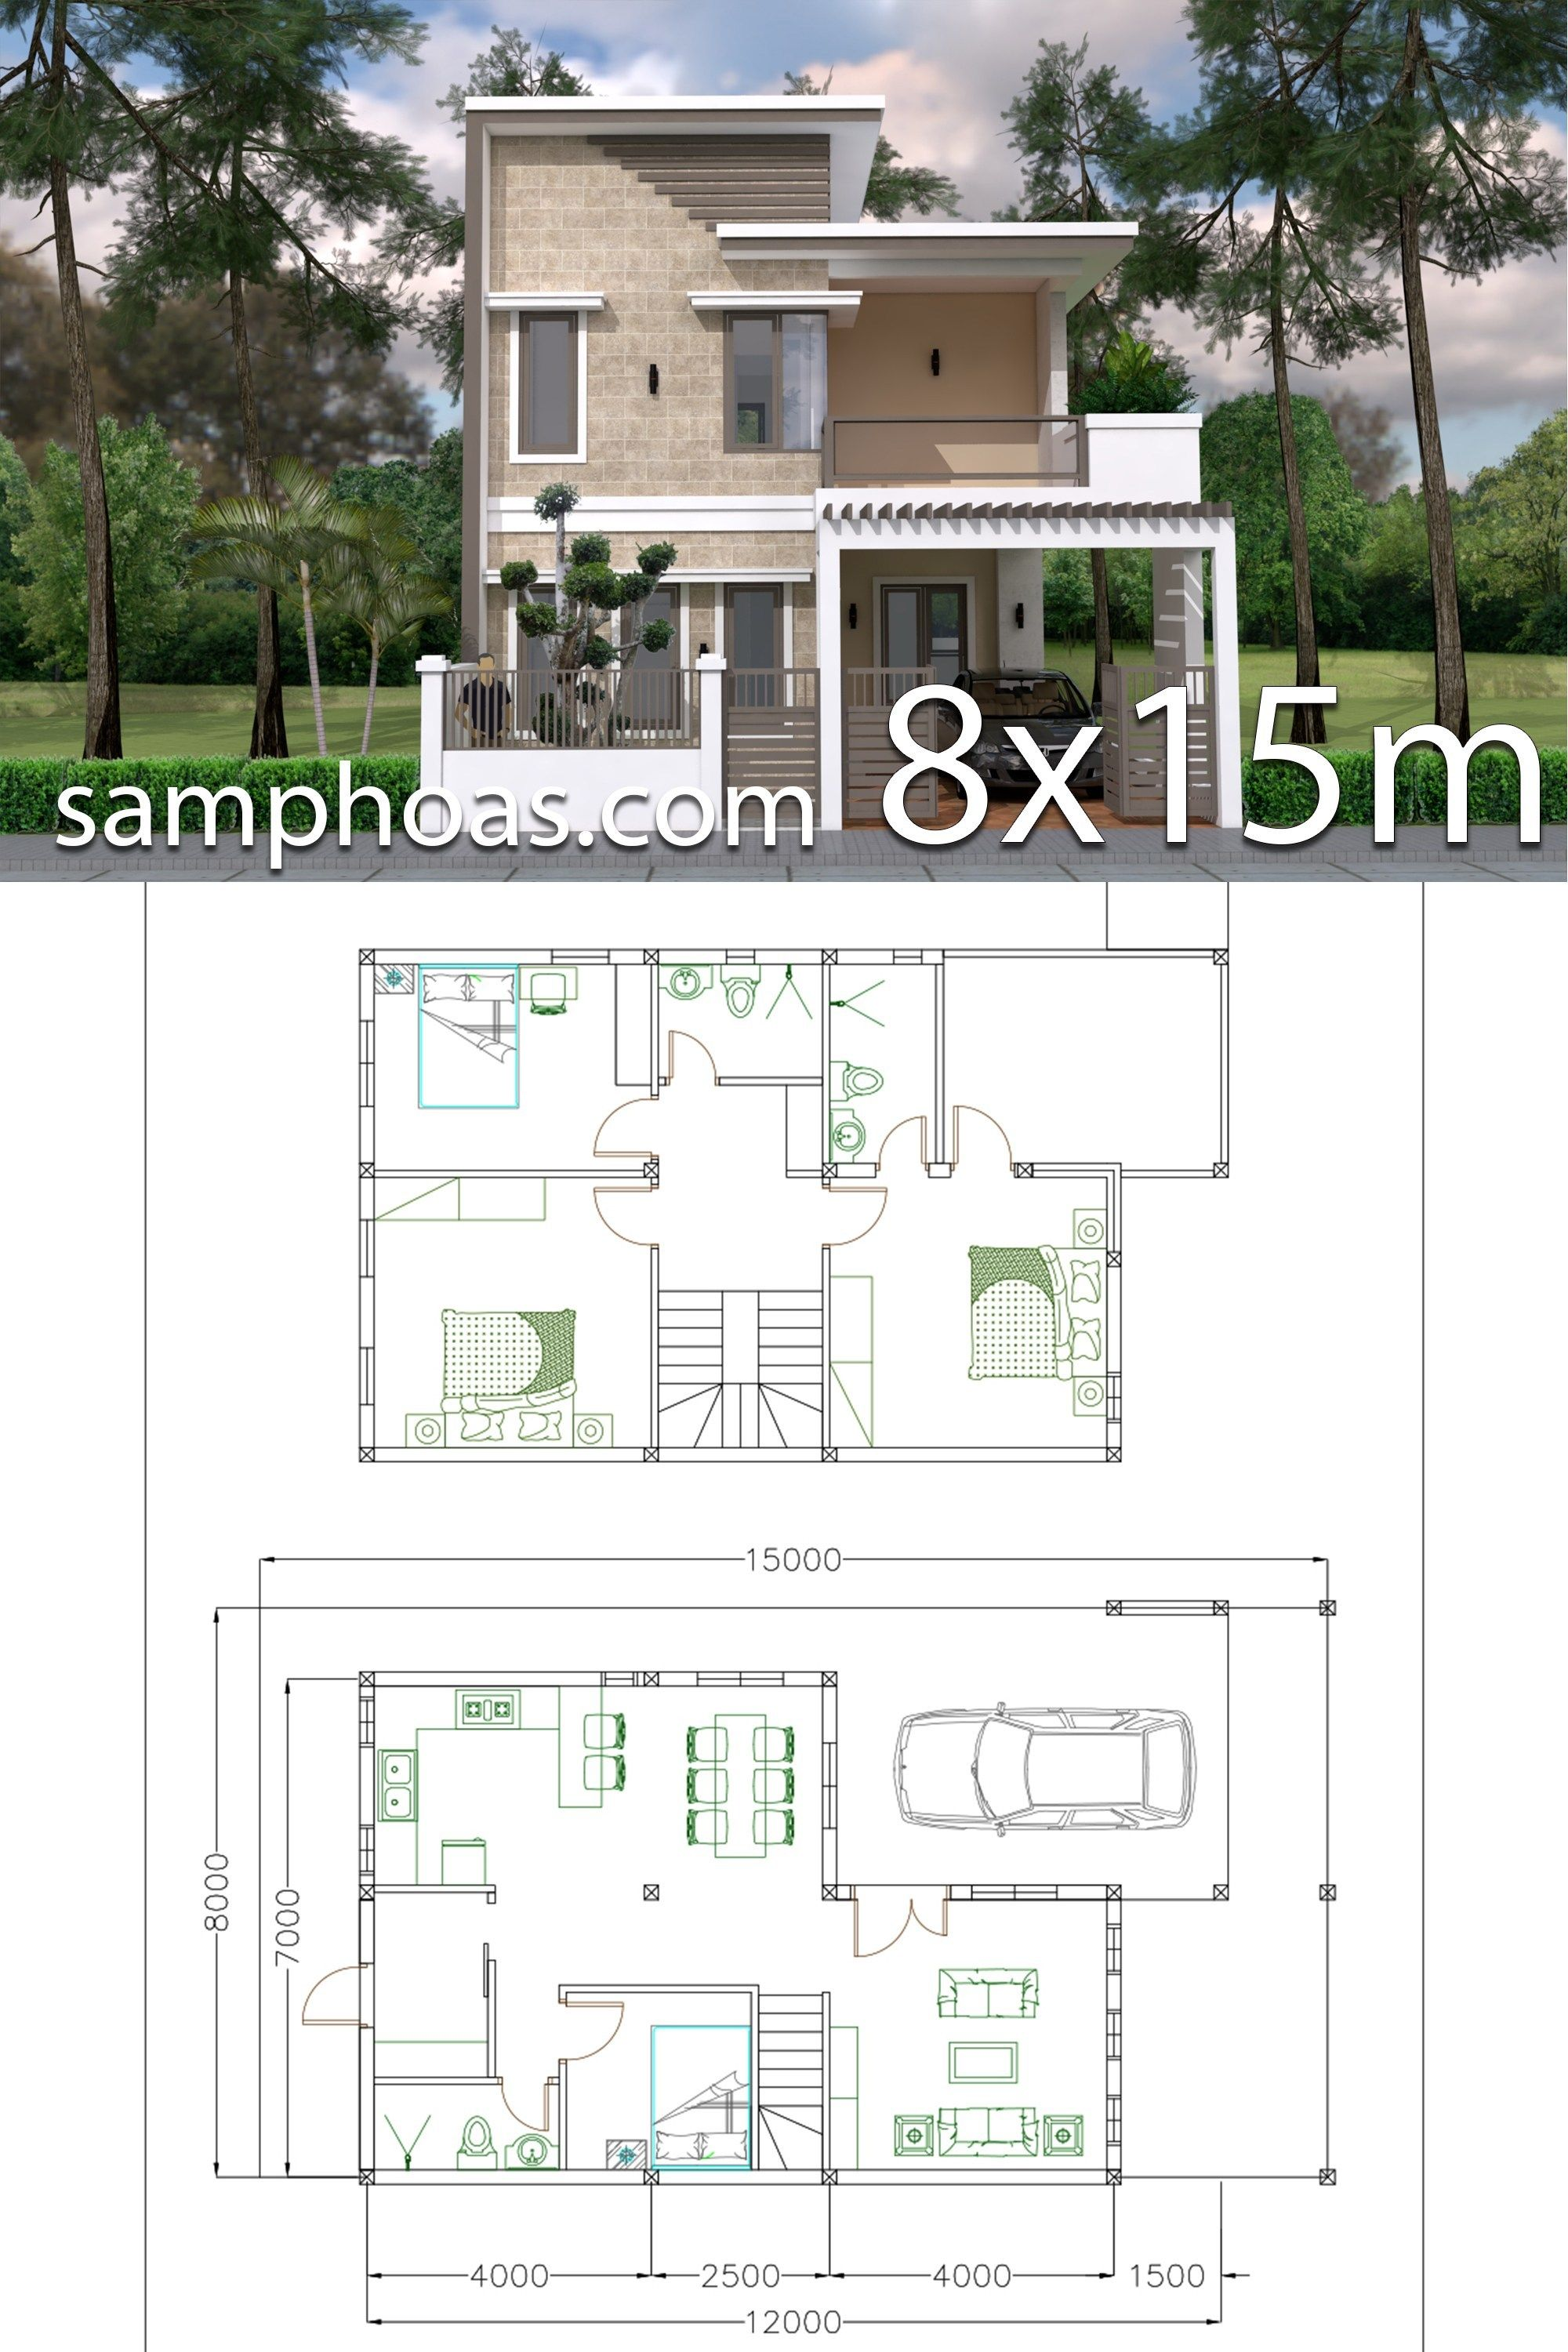 Home Design Plan 7x12m With 4 Bedrooms Plot 8 15 Samphoas Plan Home Design Plan House Construction Plan Model House Plan